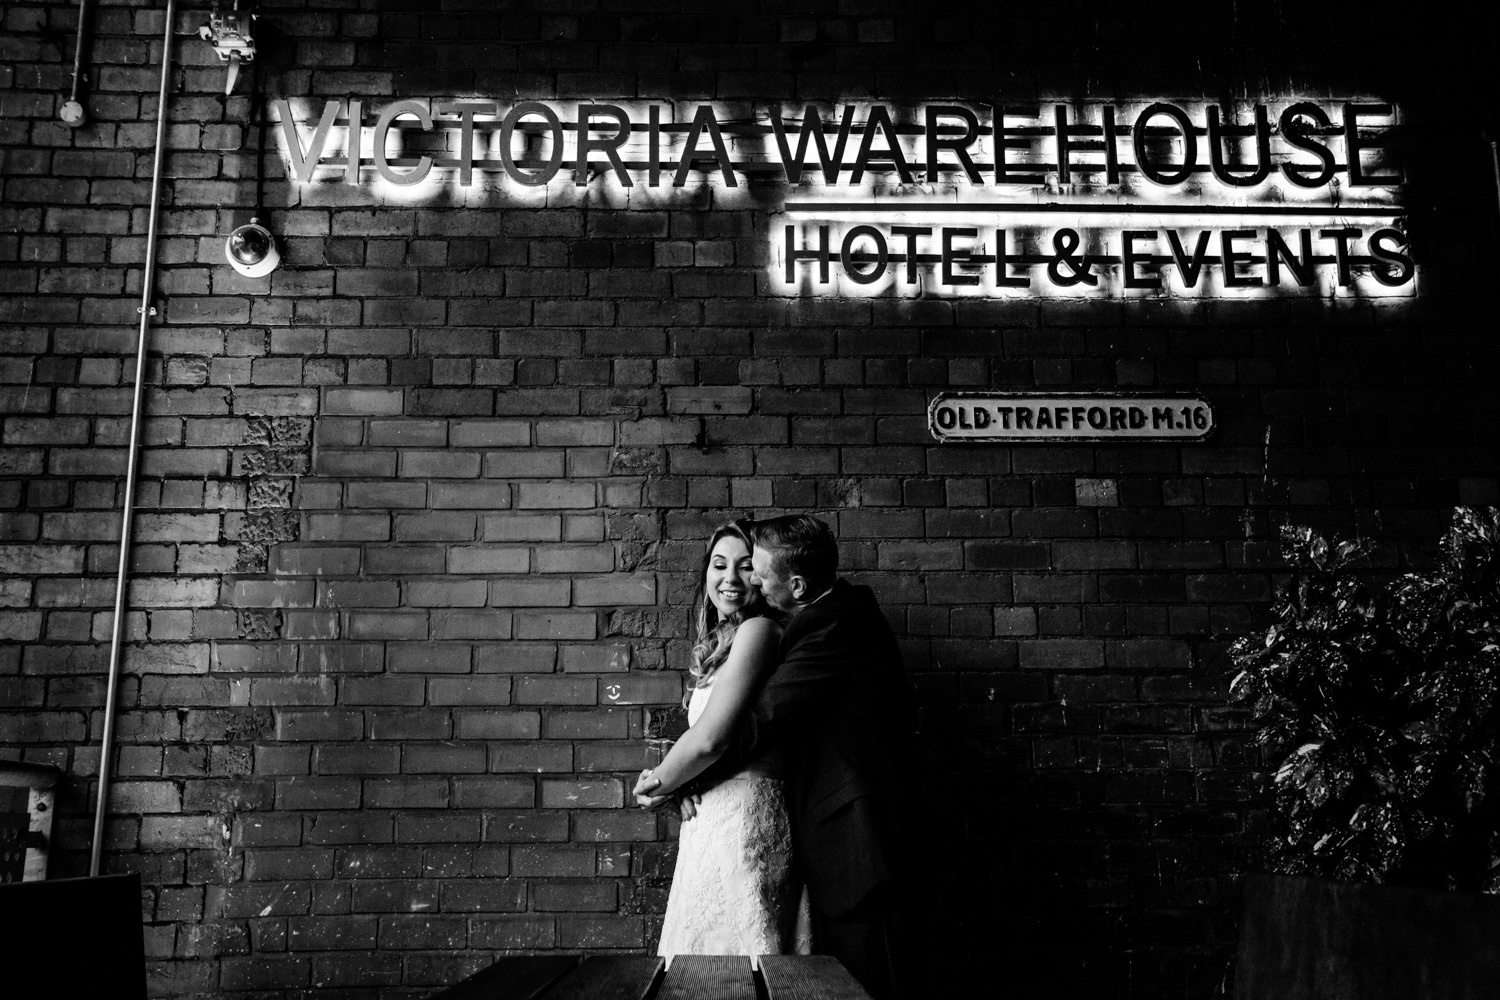 victoria-warehouse-wedding-photographer-076.jpg